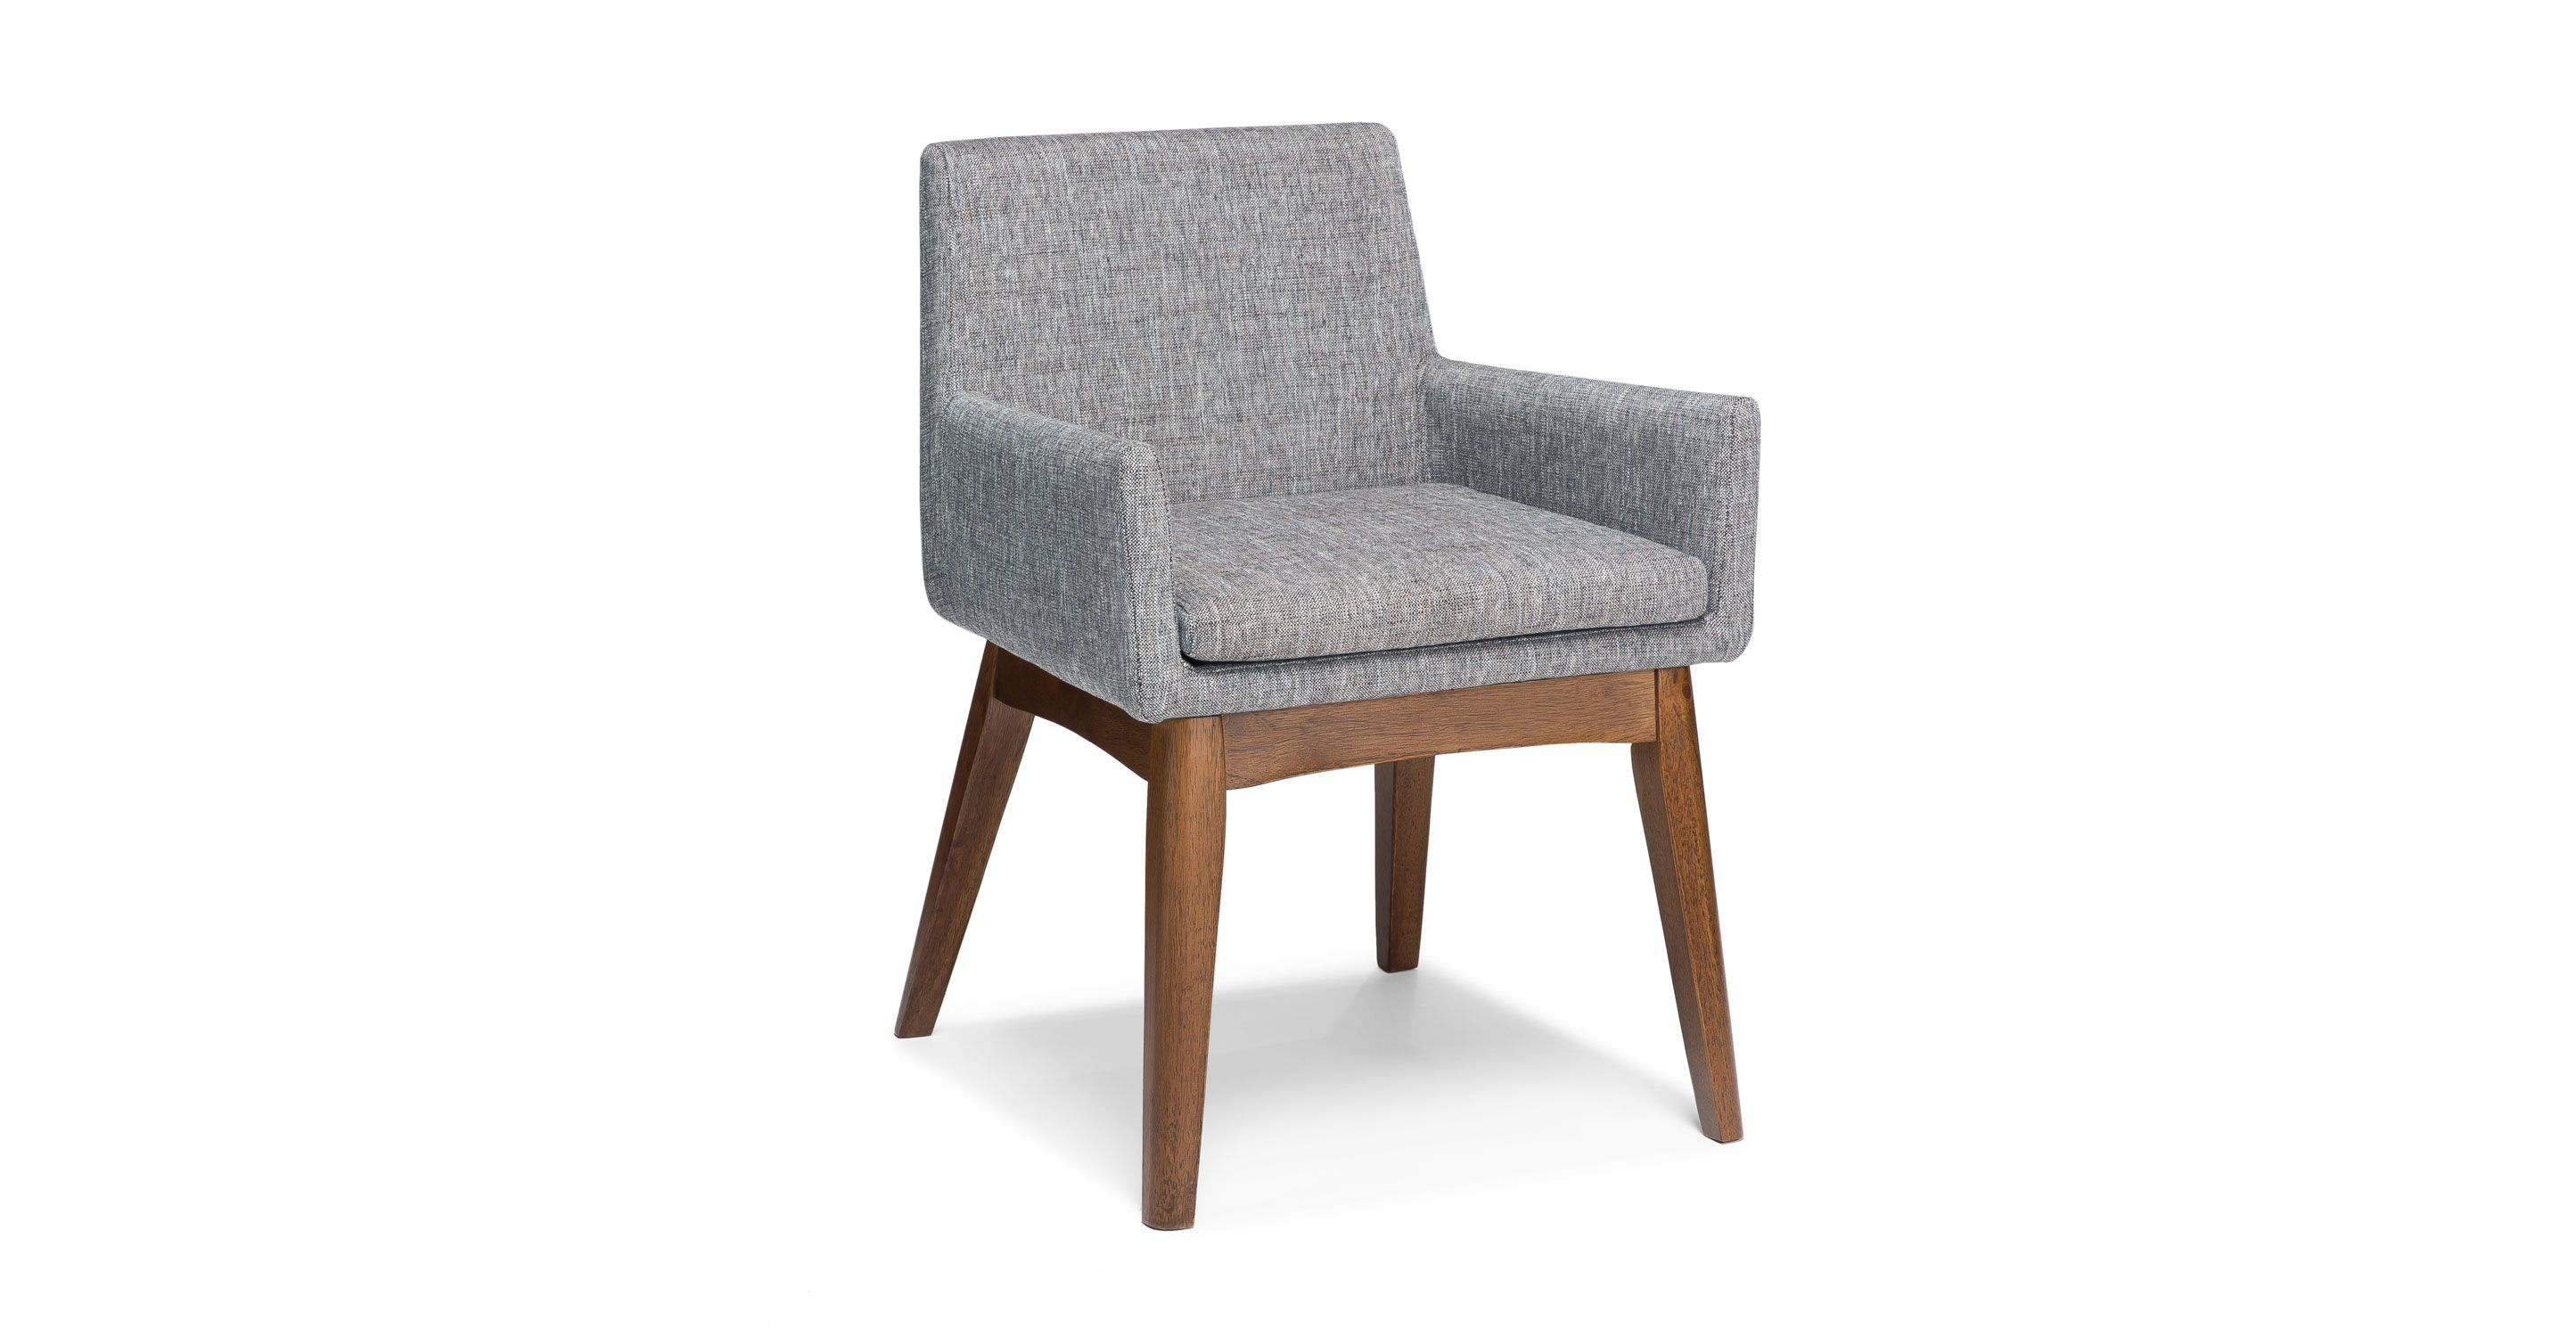 2x Gray Dining Armchair in Brown WoodUpholstered